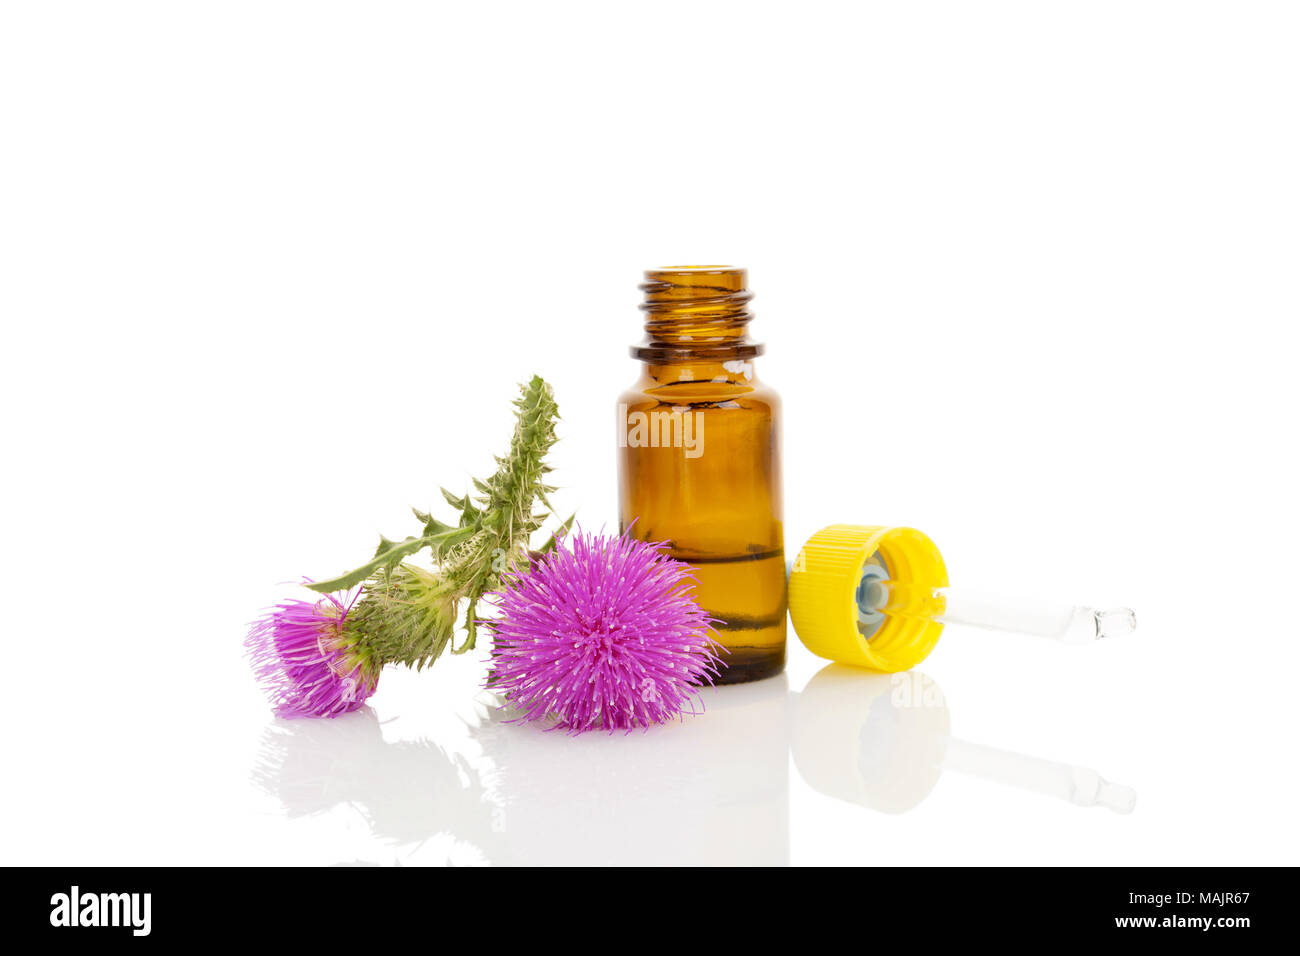 Medicine Carduus Flower Oil In Dropper With Carduus Flowers Isolated